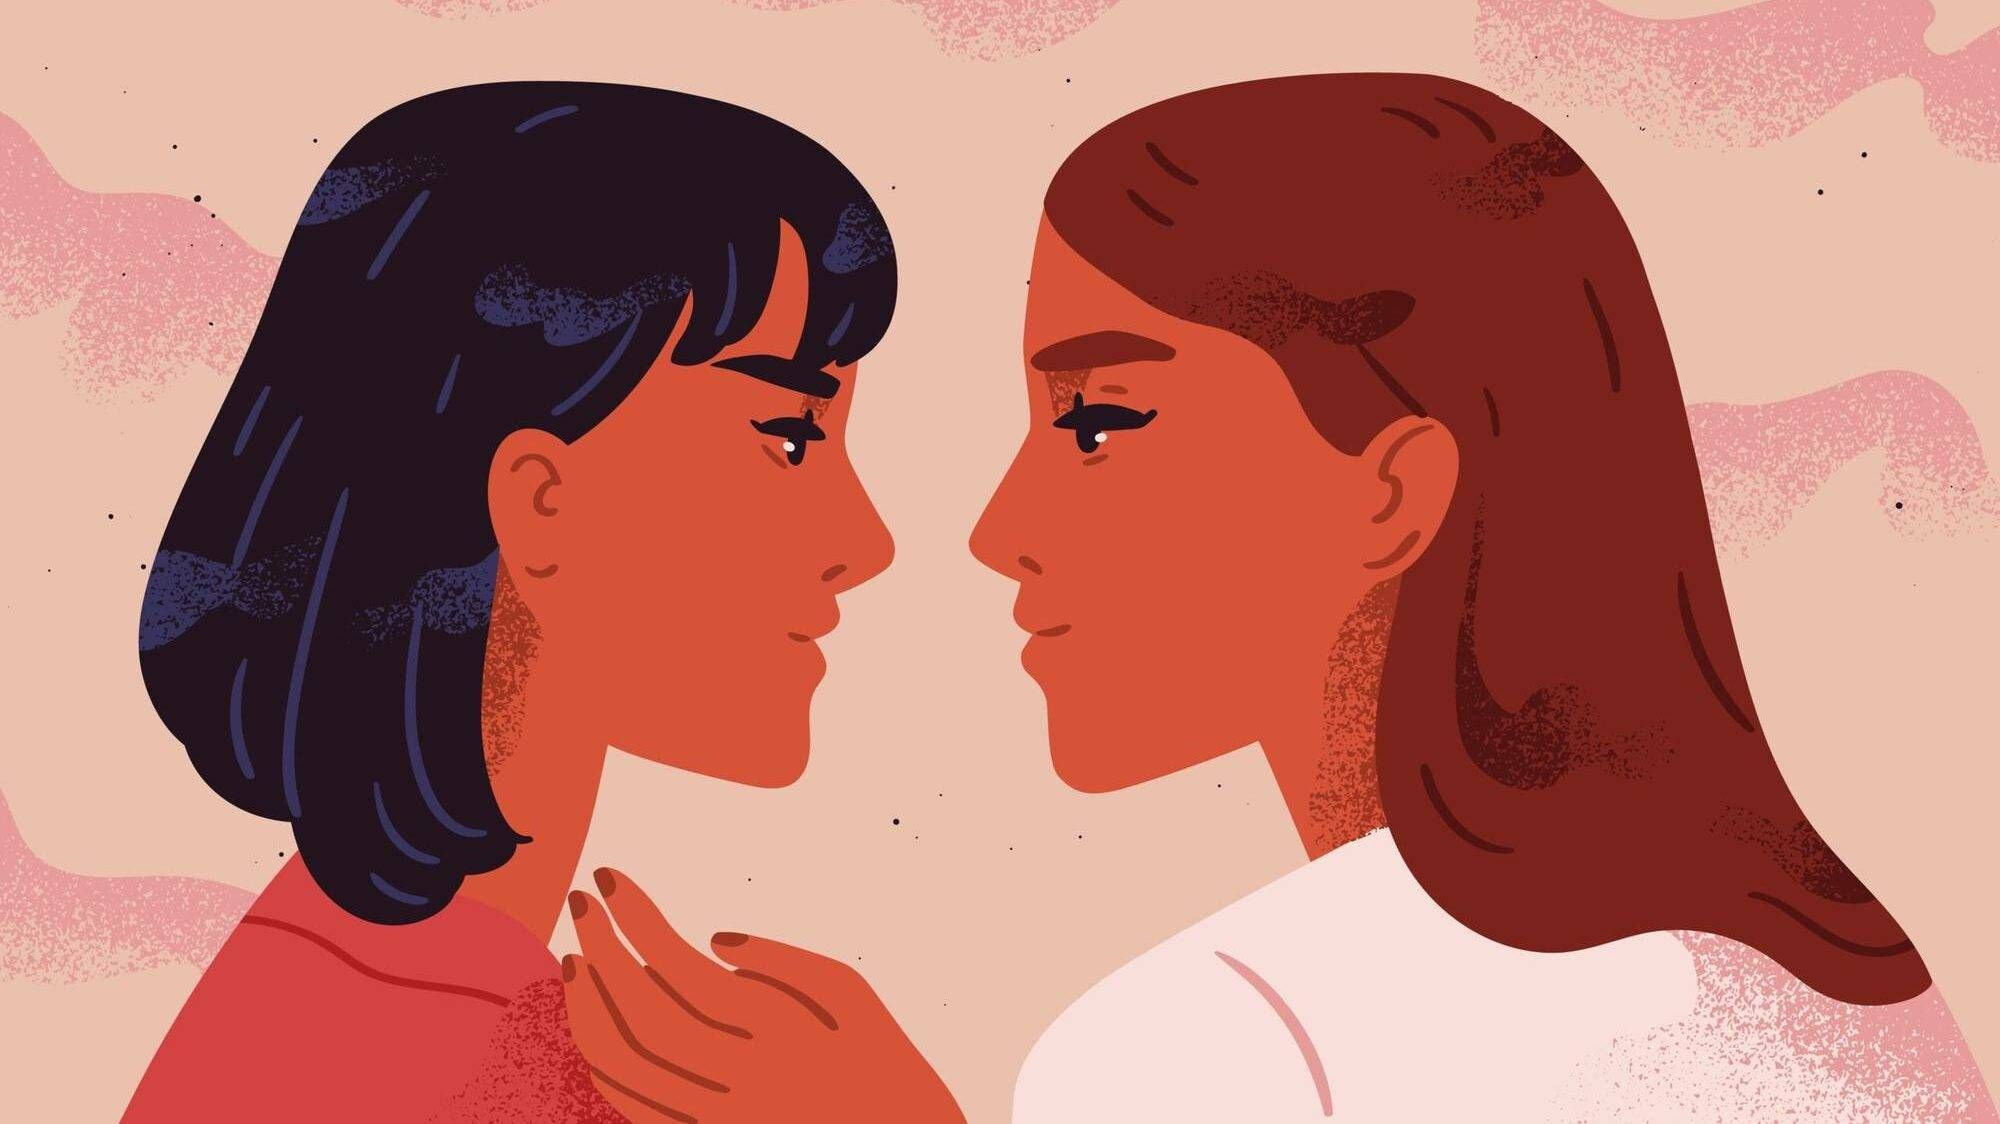 Illustration of two women in near close embrace, staring into each others eyes, queer identity